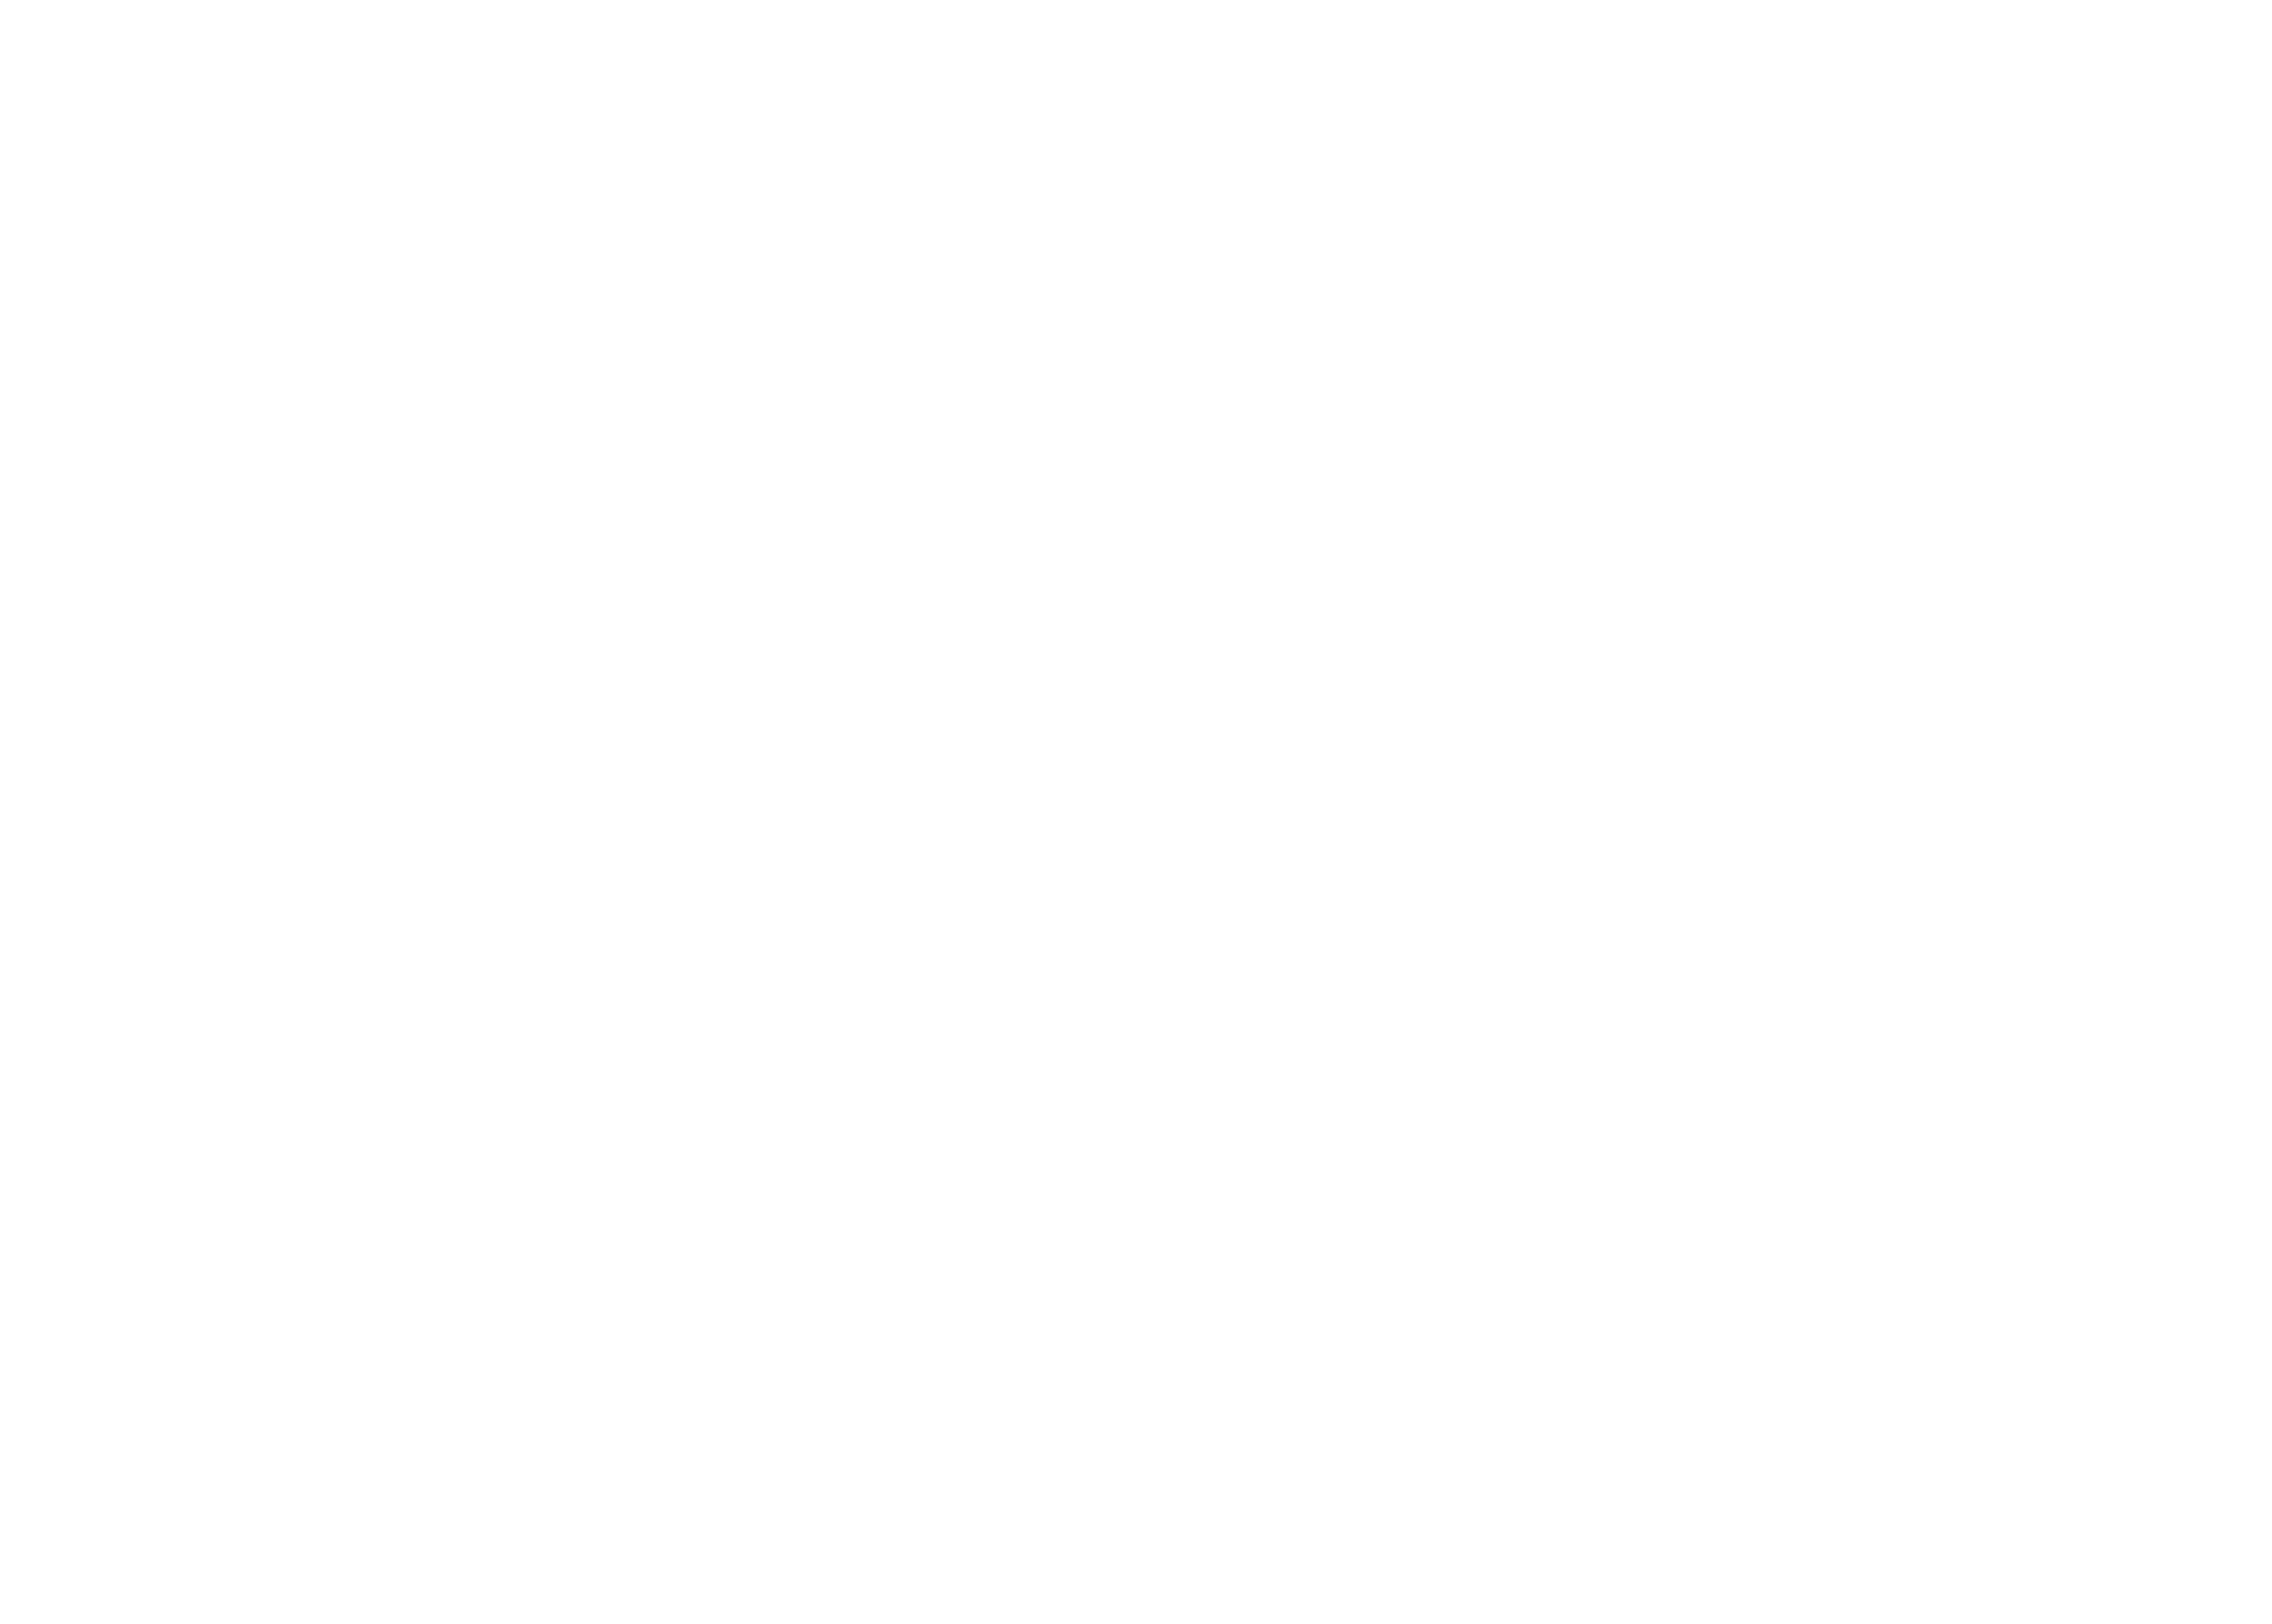 ShowTower Live